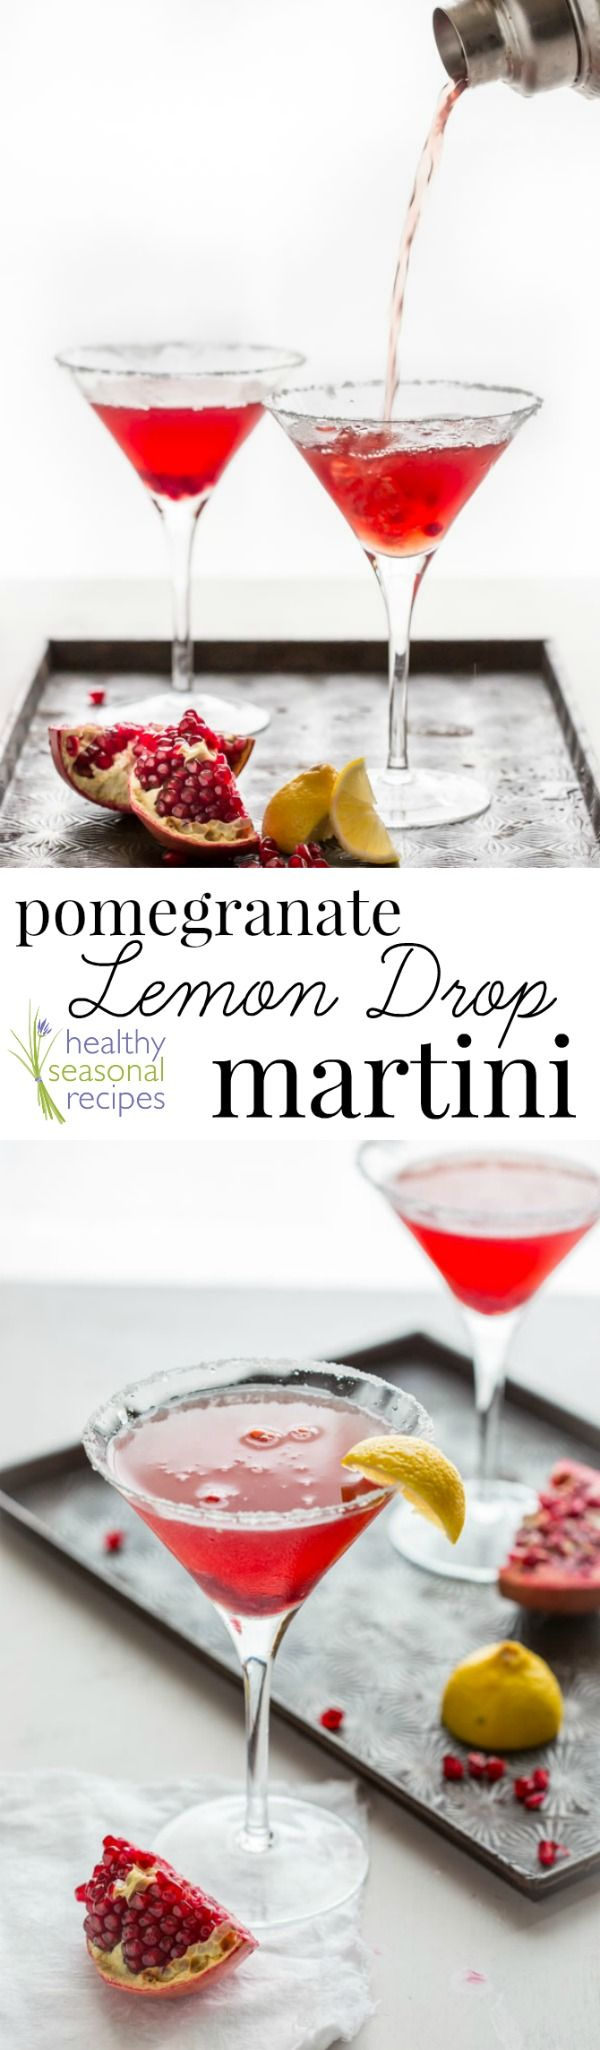 Blog post at Healthy Seasonal Recipes : This Pomegranate Lemon Drop Martini is a festive cocktail for the holiday season. It only takes 5 minutes to whip up. If you like classic le[..]